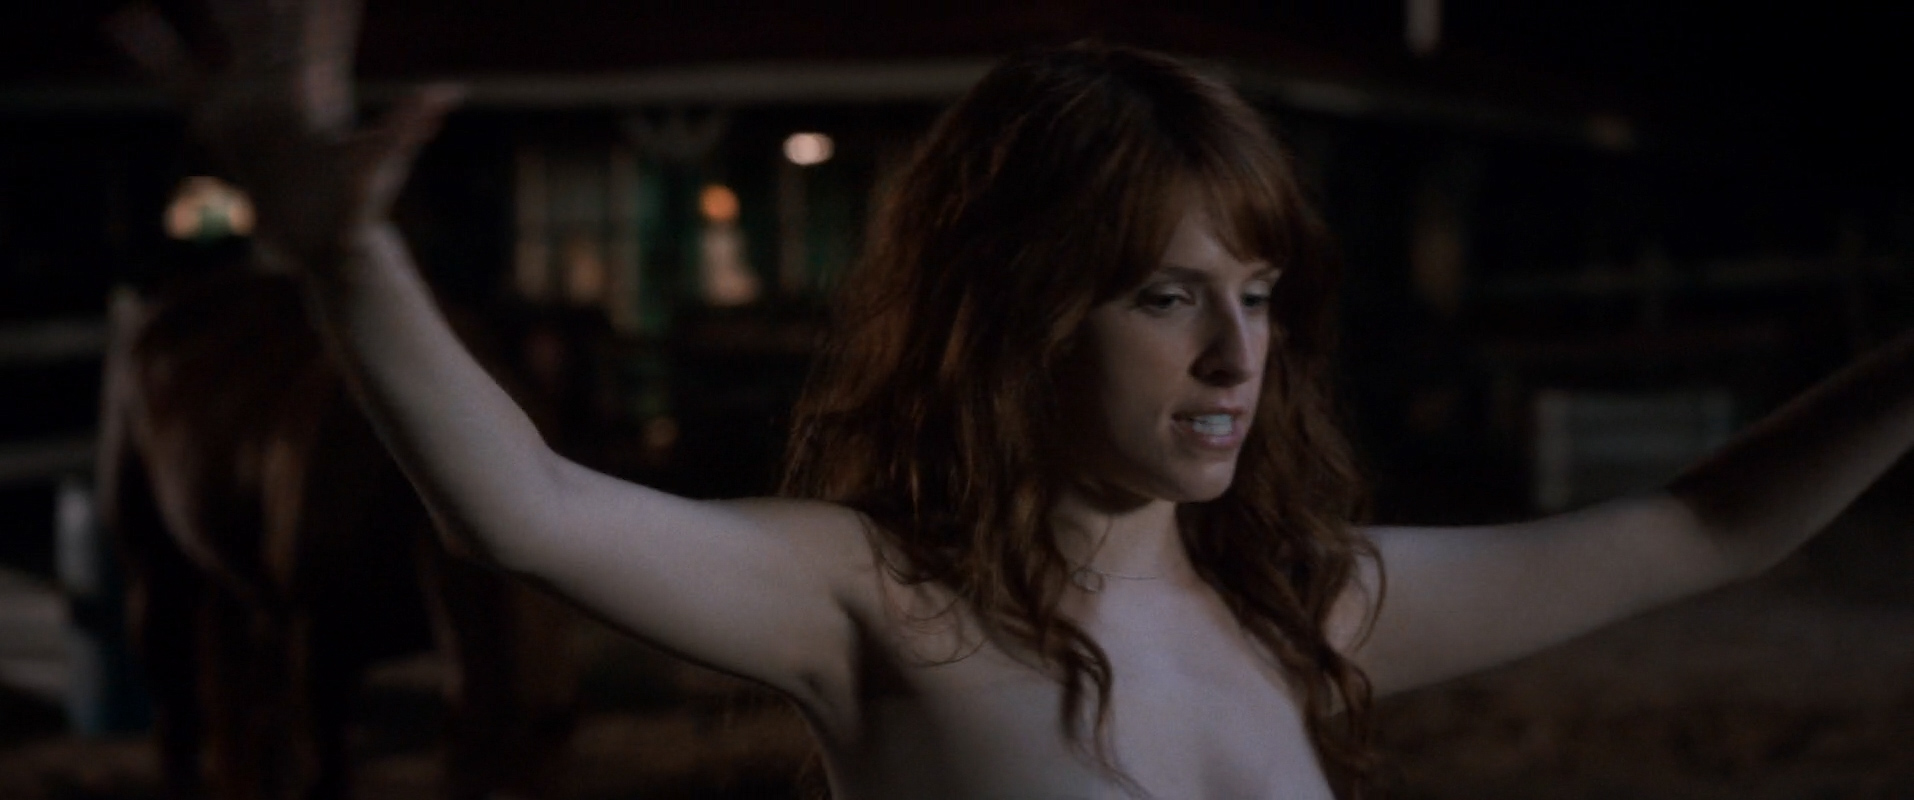 anna kendrick naked nude boobs